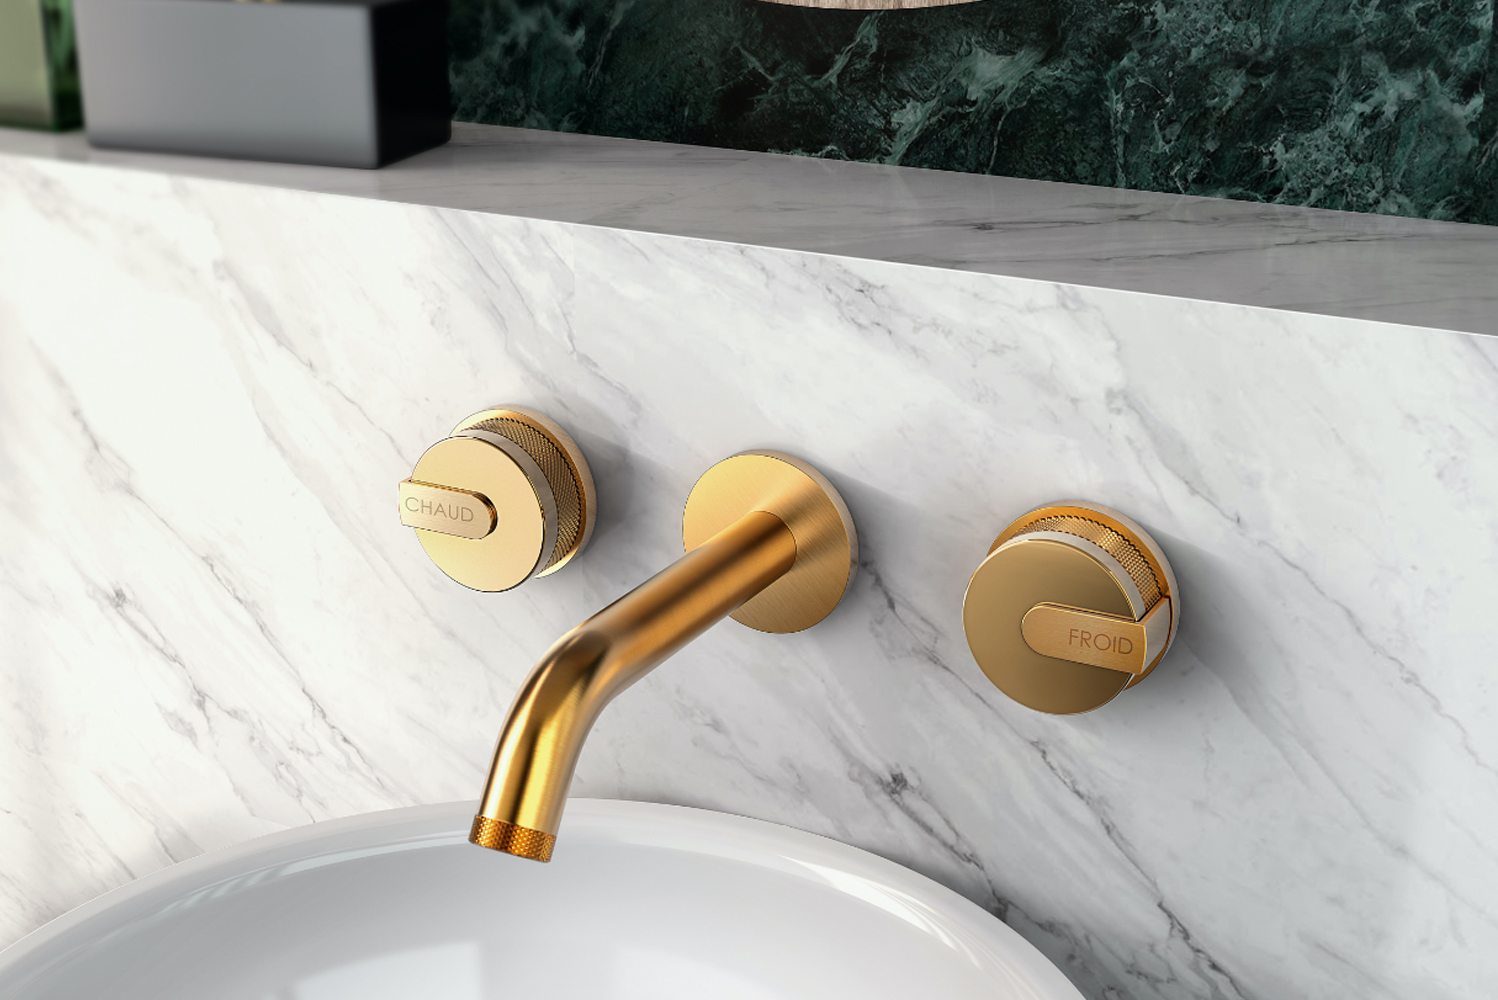 The collection uses marble and brass in the crafting of a series of faucets, tub fillers and shower components.